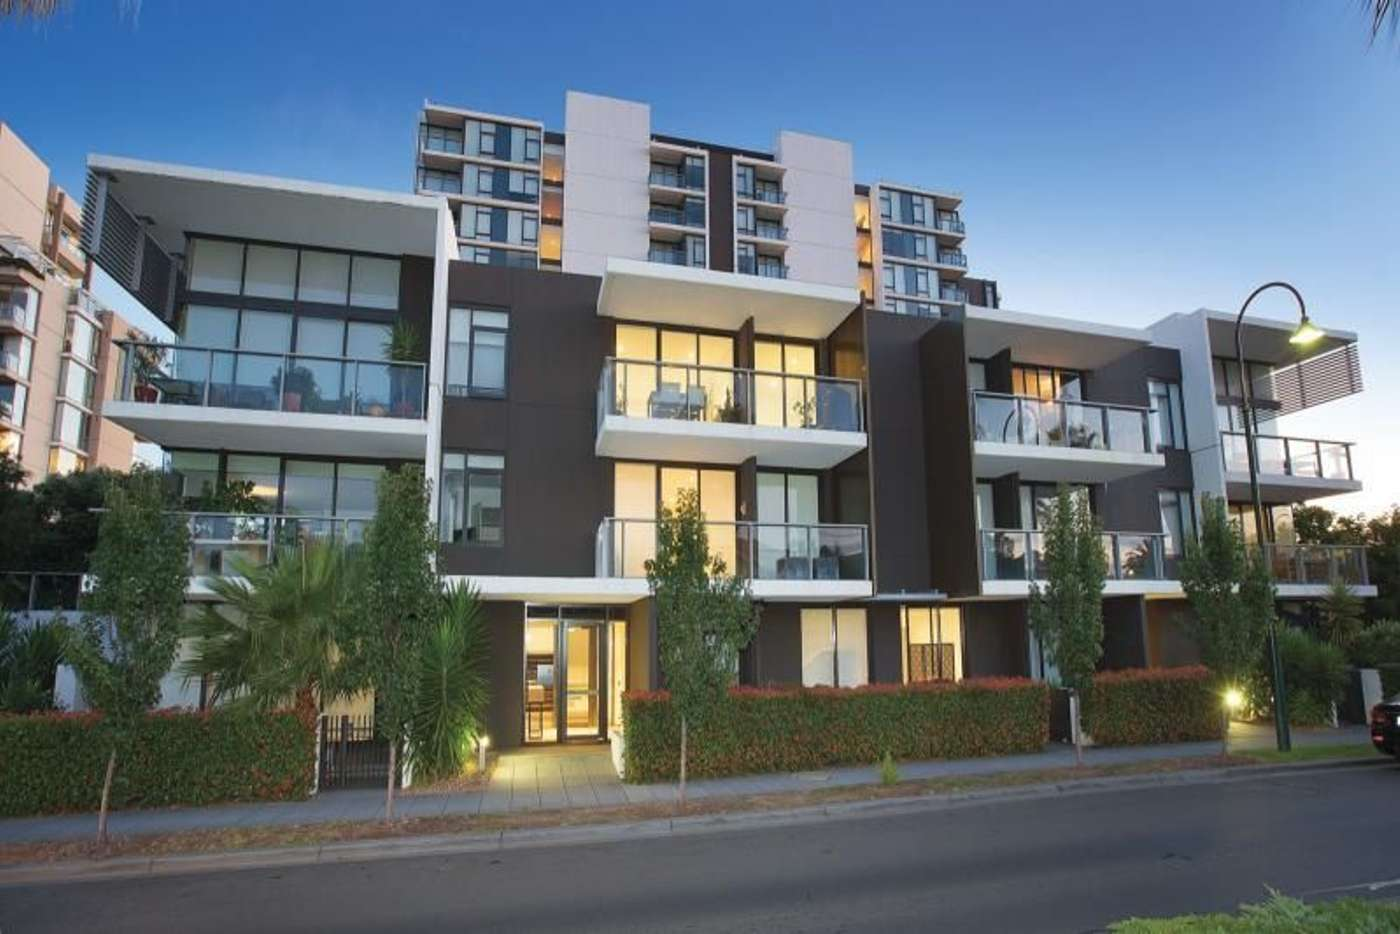 Main view of Homely apartment listing, 5/151 Beach Street, Port Melbourne VIC 3207